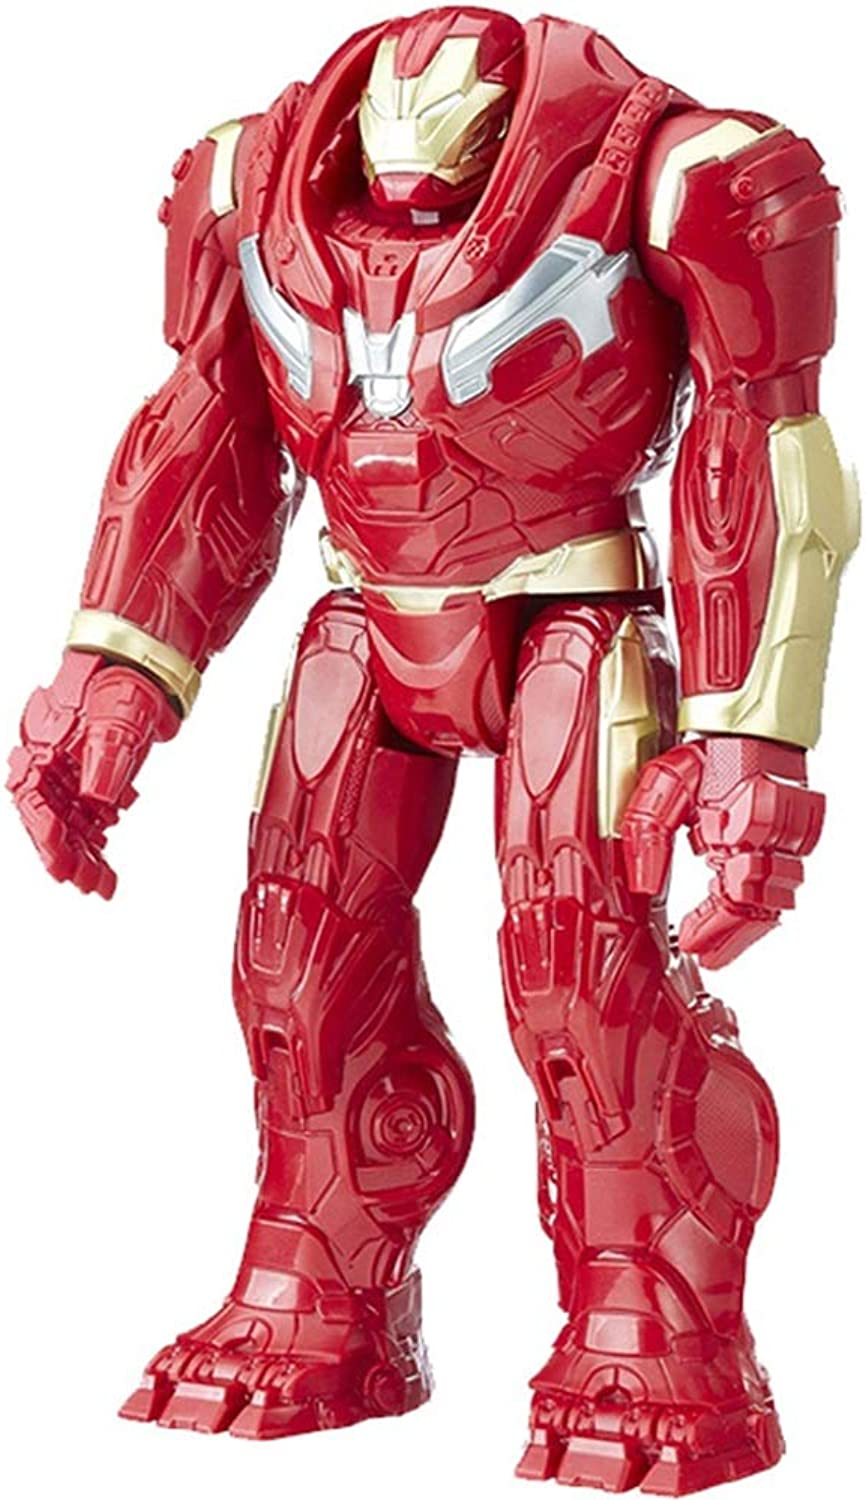 LFMZB Marvel Avengers 3, 12 Inch E1798 Hulkbuster Action Figure Toy,Suitable For Ages 4 And Up  Large Hulkbuster Model Boy Toy